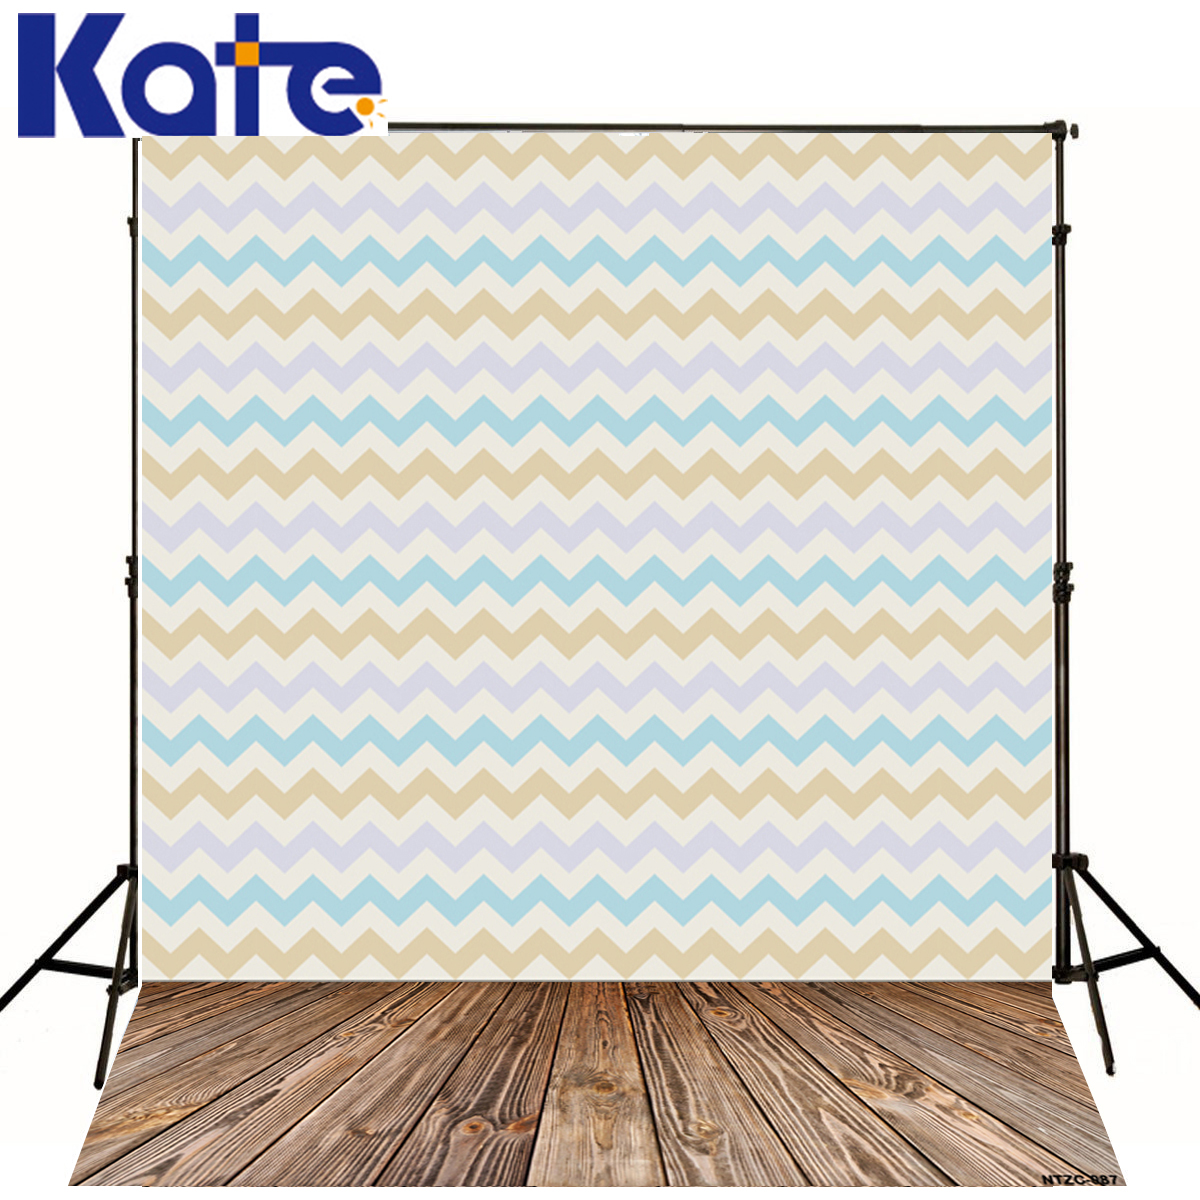 Kate Photography Backdrops Colored Wavy Stripes Blue Fond Studio Photo Wood Floor Fotografia Background For Photo Studio J01679 kate 7x5ft photography backdrops floors bookshelf books retro back to school photo background photocall for kids fond studio